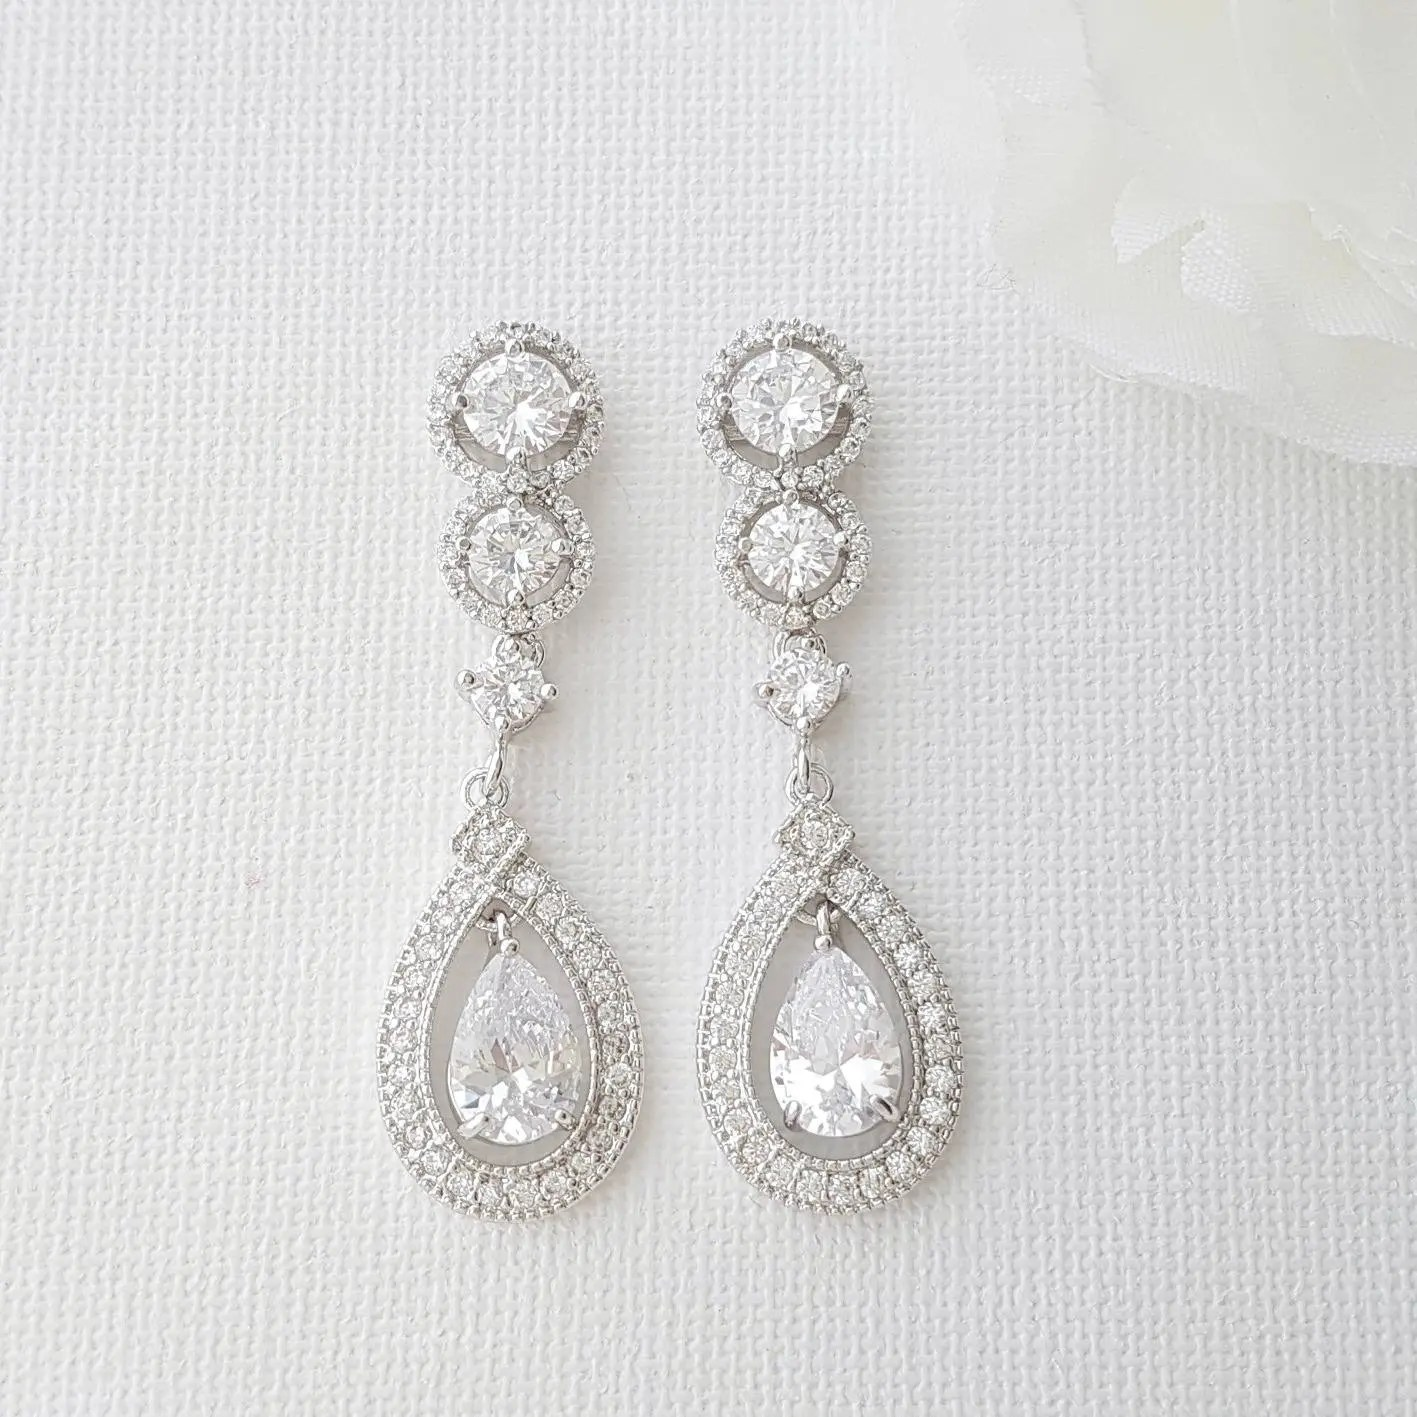 Where To Get Bridal Jewelry Crystal Bridal Earrings Long Wedding Earrings Bridal Jewelry Cubic Zirconia Drop Earrings Crystal Wedding Jewelry For Bride Sarah